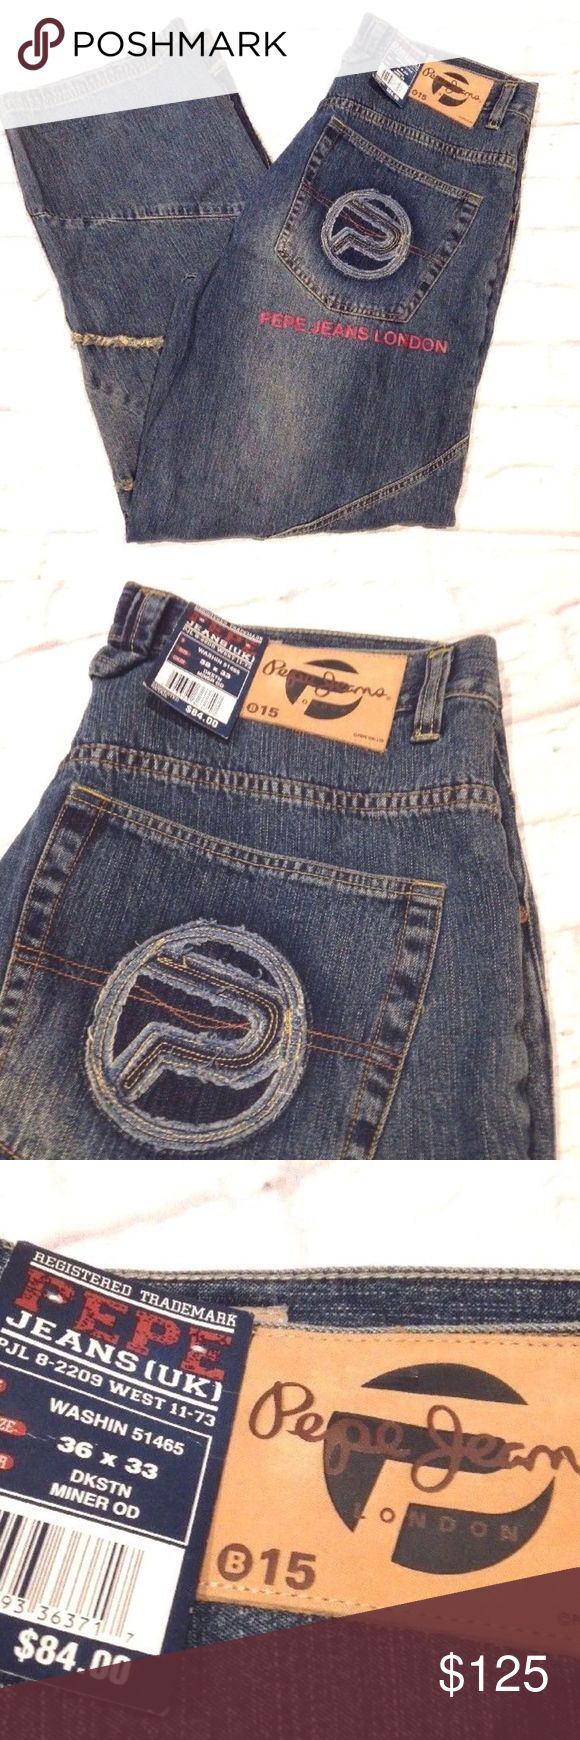 VTG 90'S PEPE JEANS LONDON BAGGY JEANS HIP HOP RAP NEW WITH TAGS  VINTAGE 90'S PEPE JEANS LONDON BAGGY JEANS  SIZE ON TAG IS 36 X 33 WAIST =18'' INSEAM = 32'' LENGTH = 45'' Pepe Jeans Jeans Relaxed